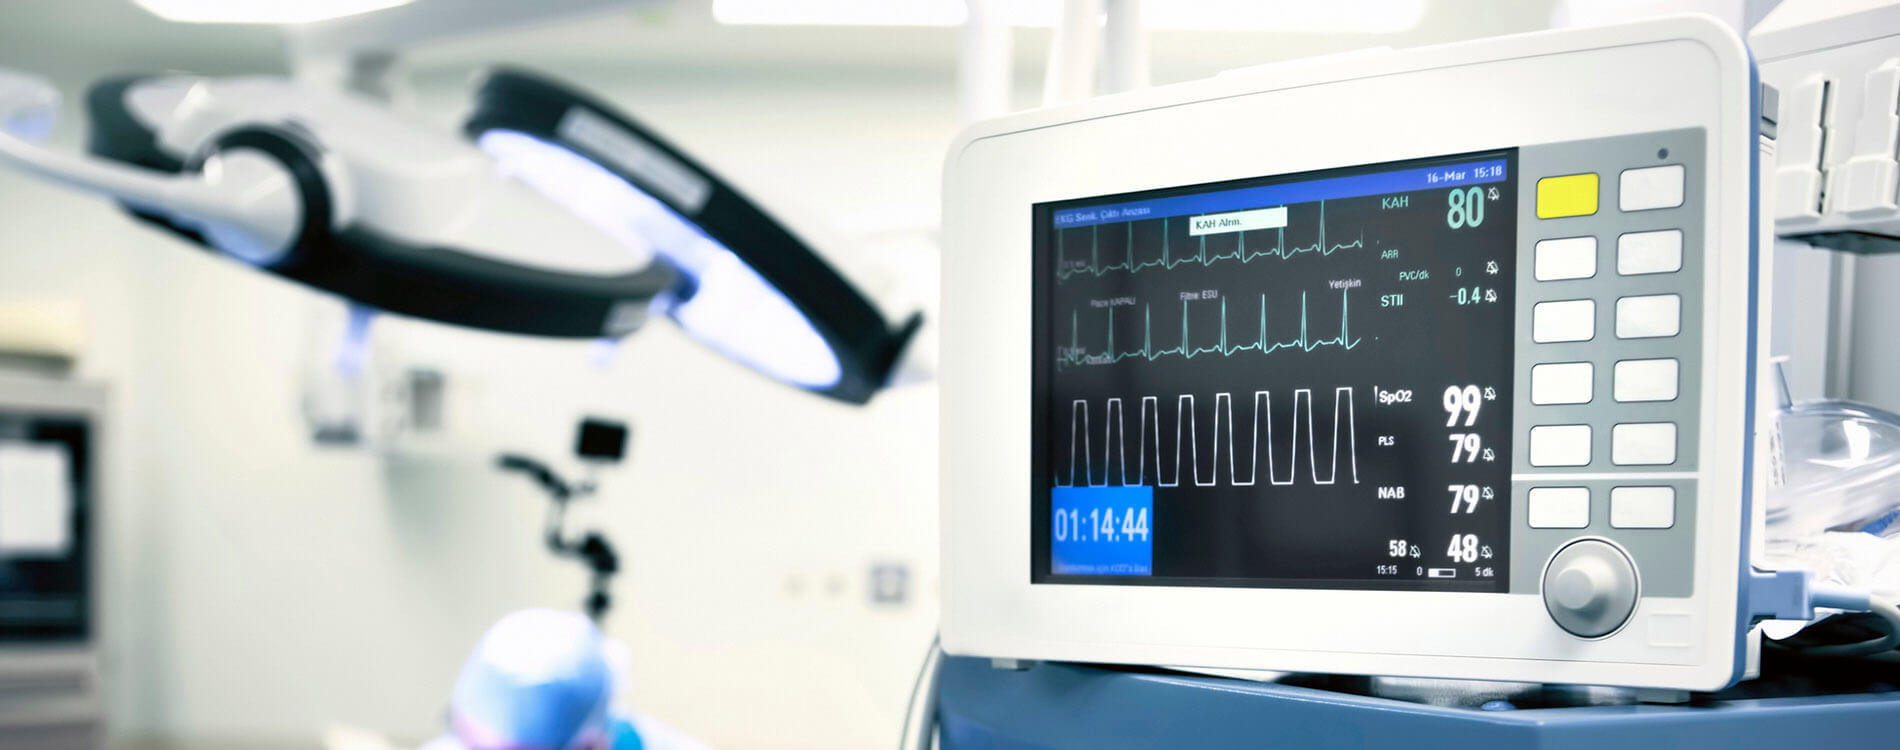 patient-monitor-banner